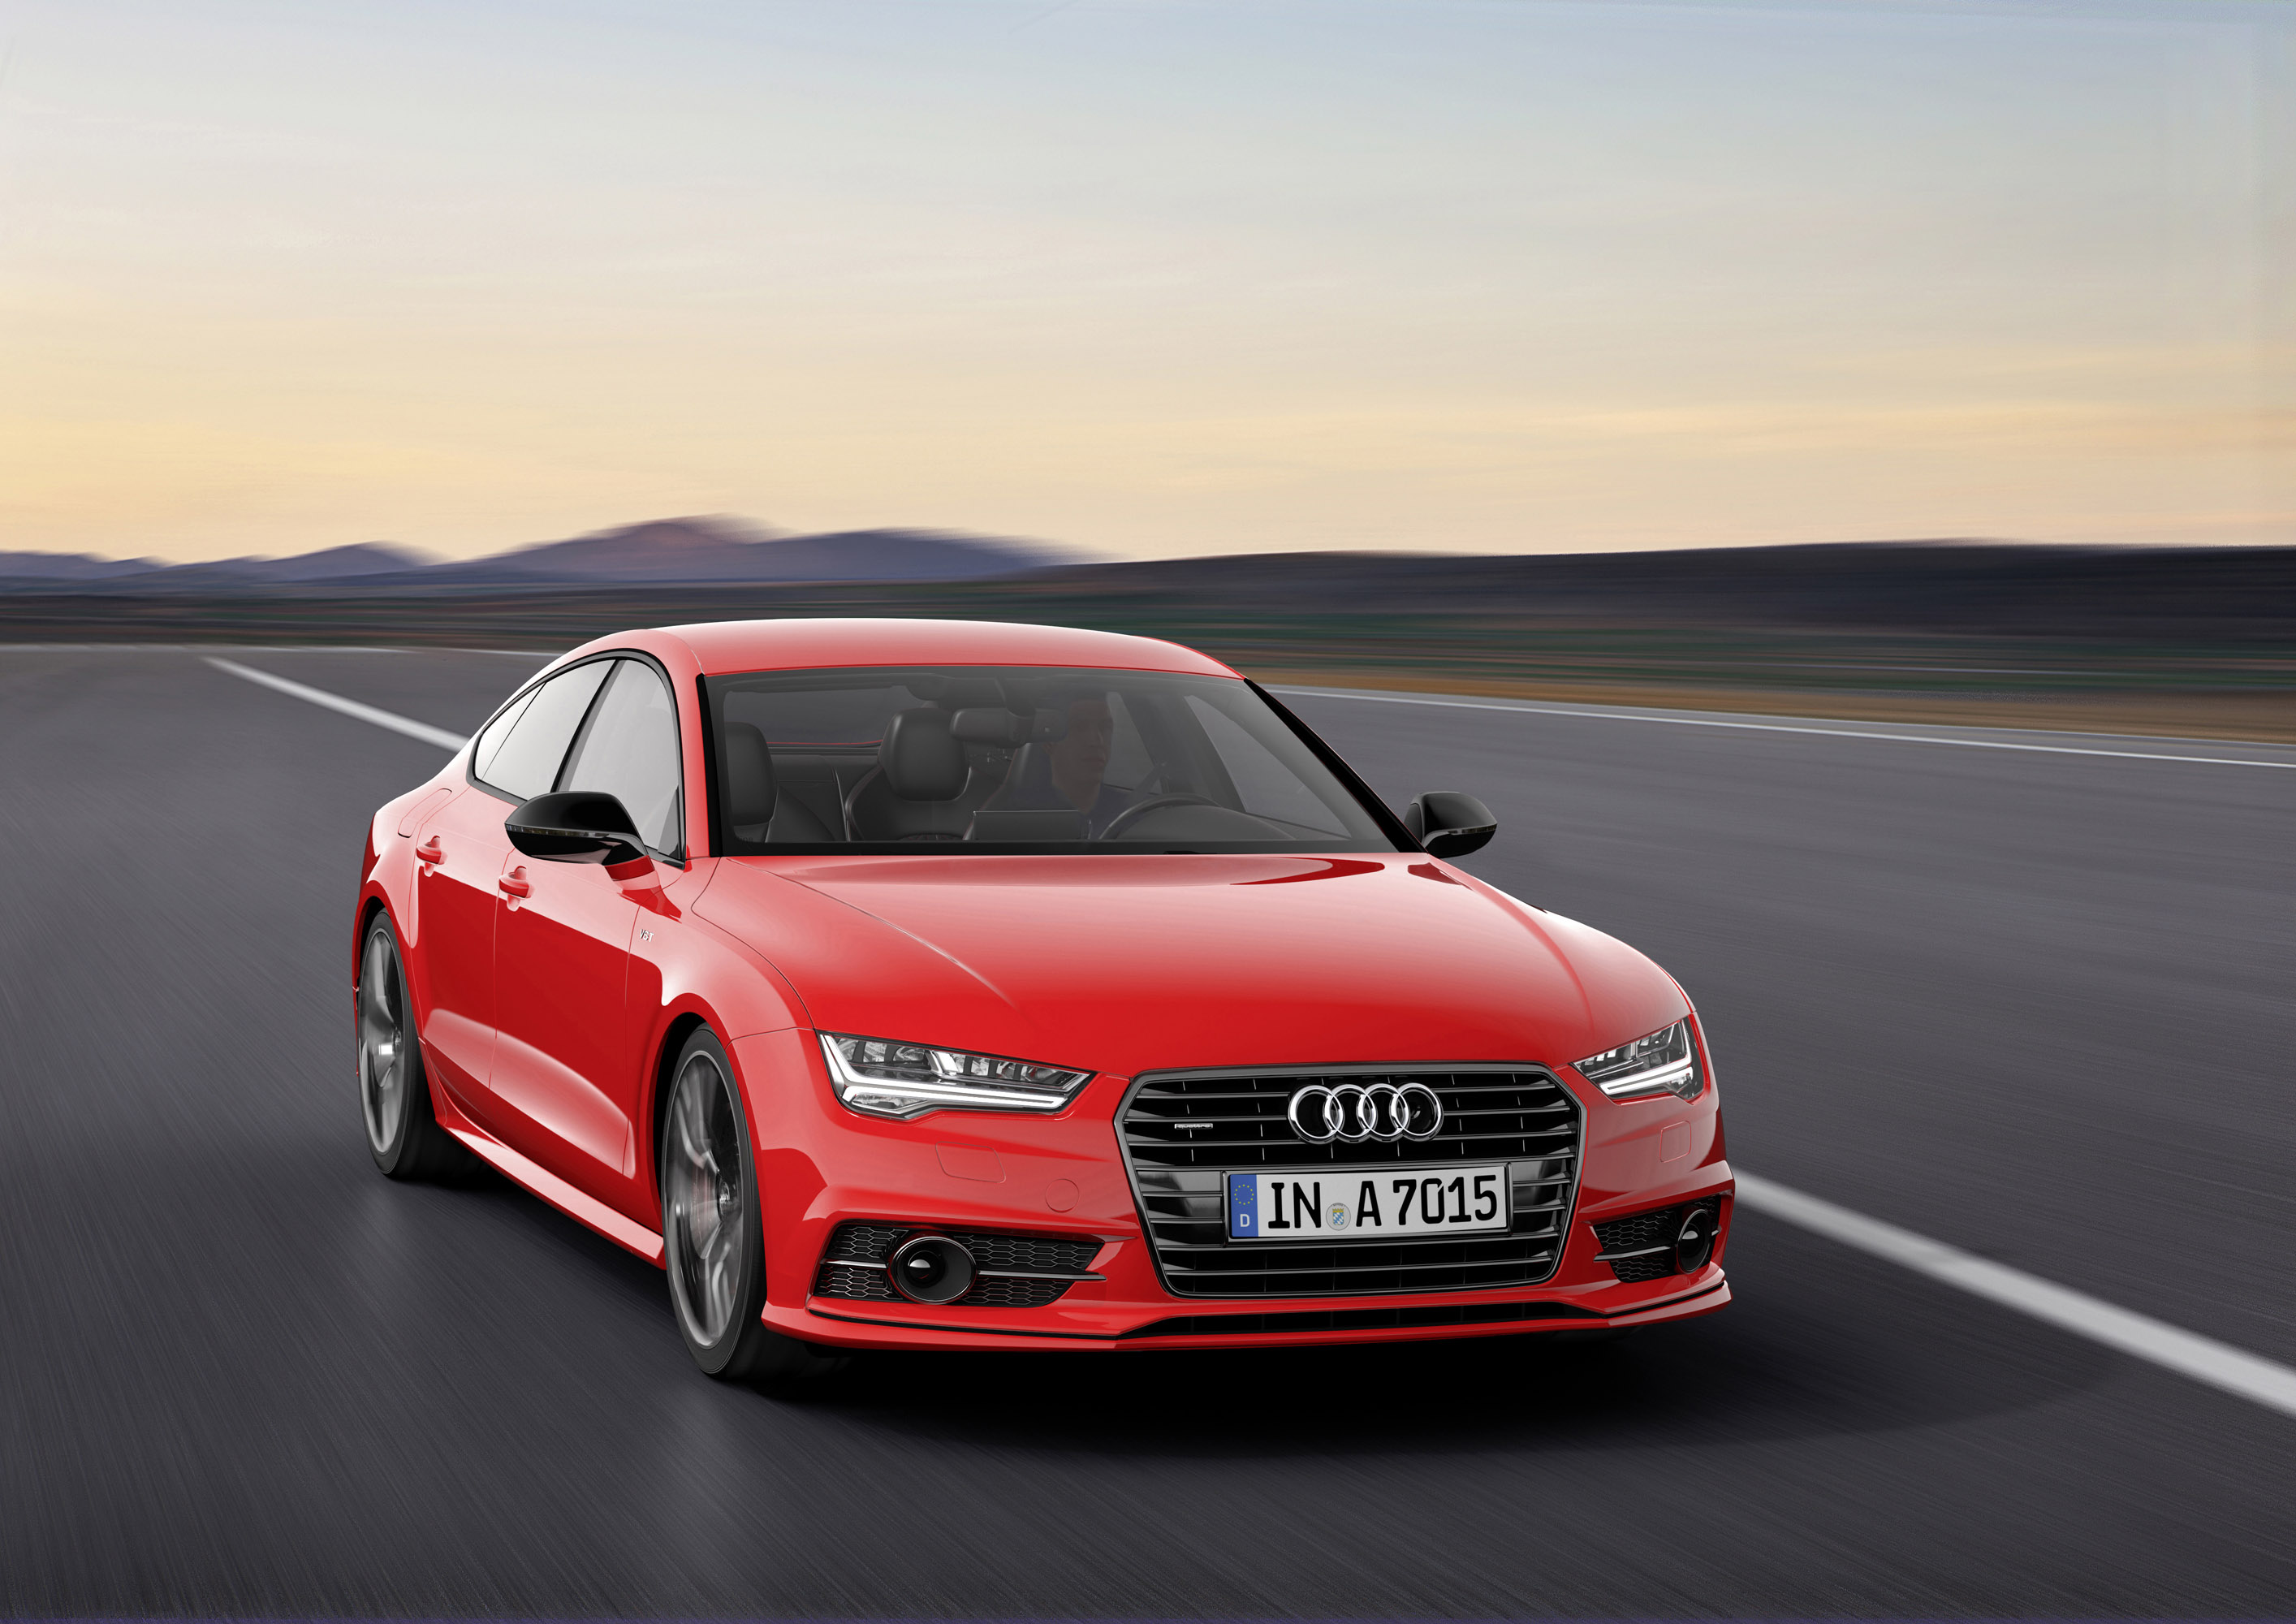 2014 audi a7 sportback 3 0 tdi competition. Black Bedroom Furniture Sets. Home Design Ideas